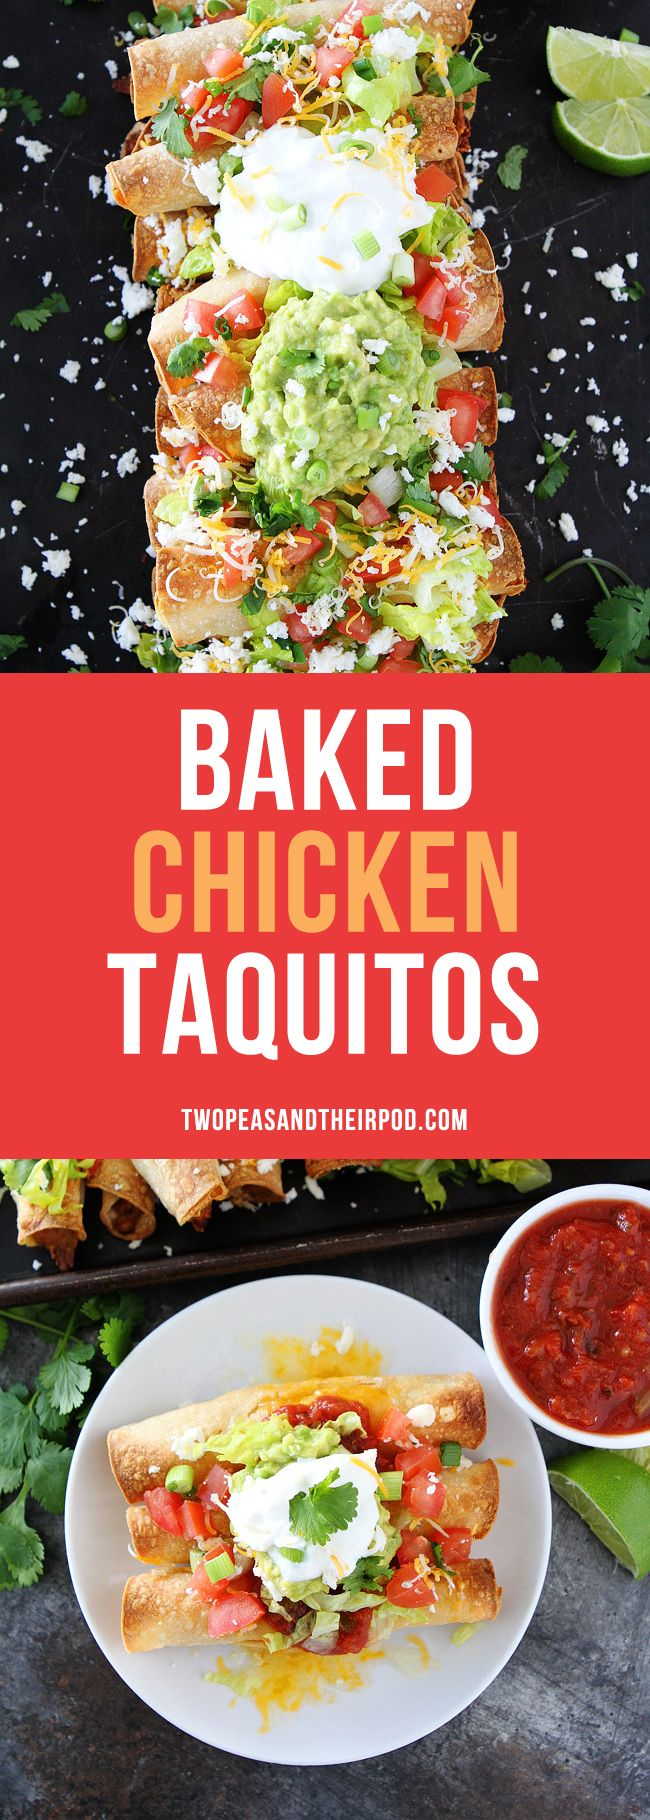 Baked Chicken Taquitos are easy to make at home! They are baked and not fried, but still super crispy! Top with all of your favorite toppings and serve at parties, game day, or for dinner!